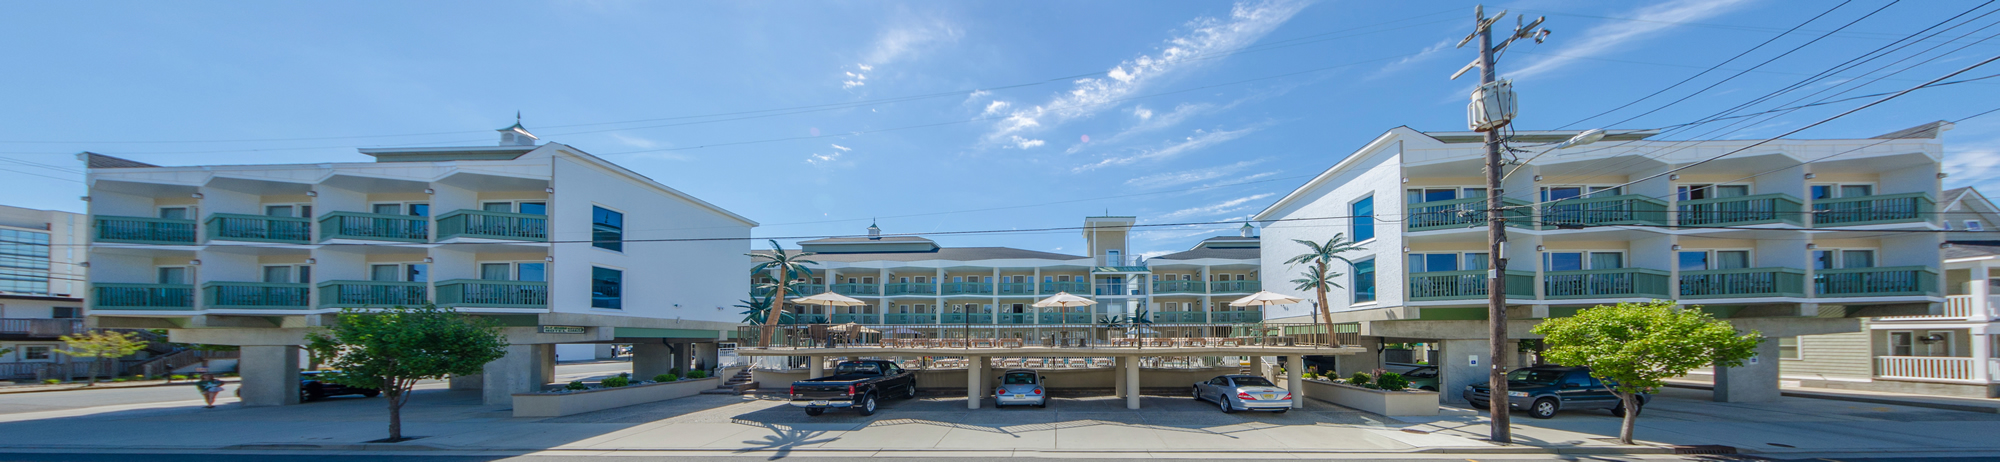 Ala Moana Motel - 5300 Atlantic Avenue, Wildwood NJ, 08260